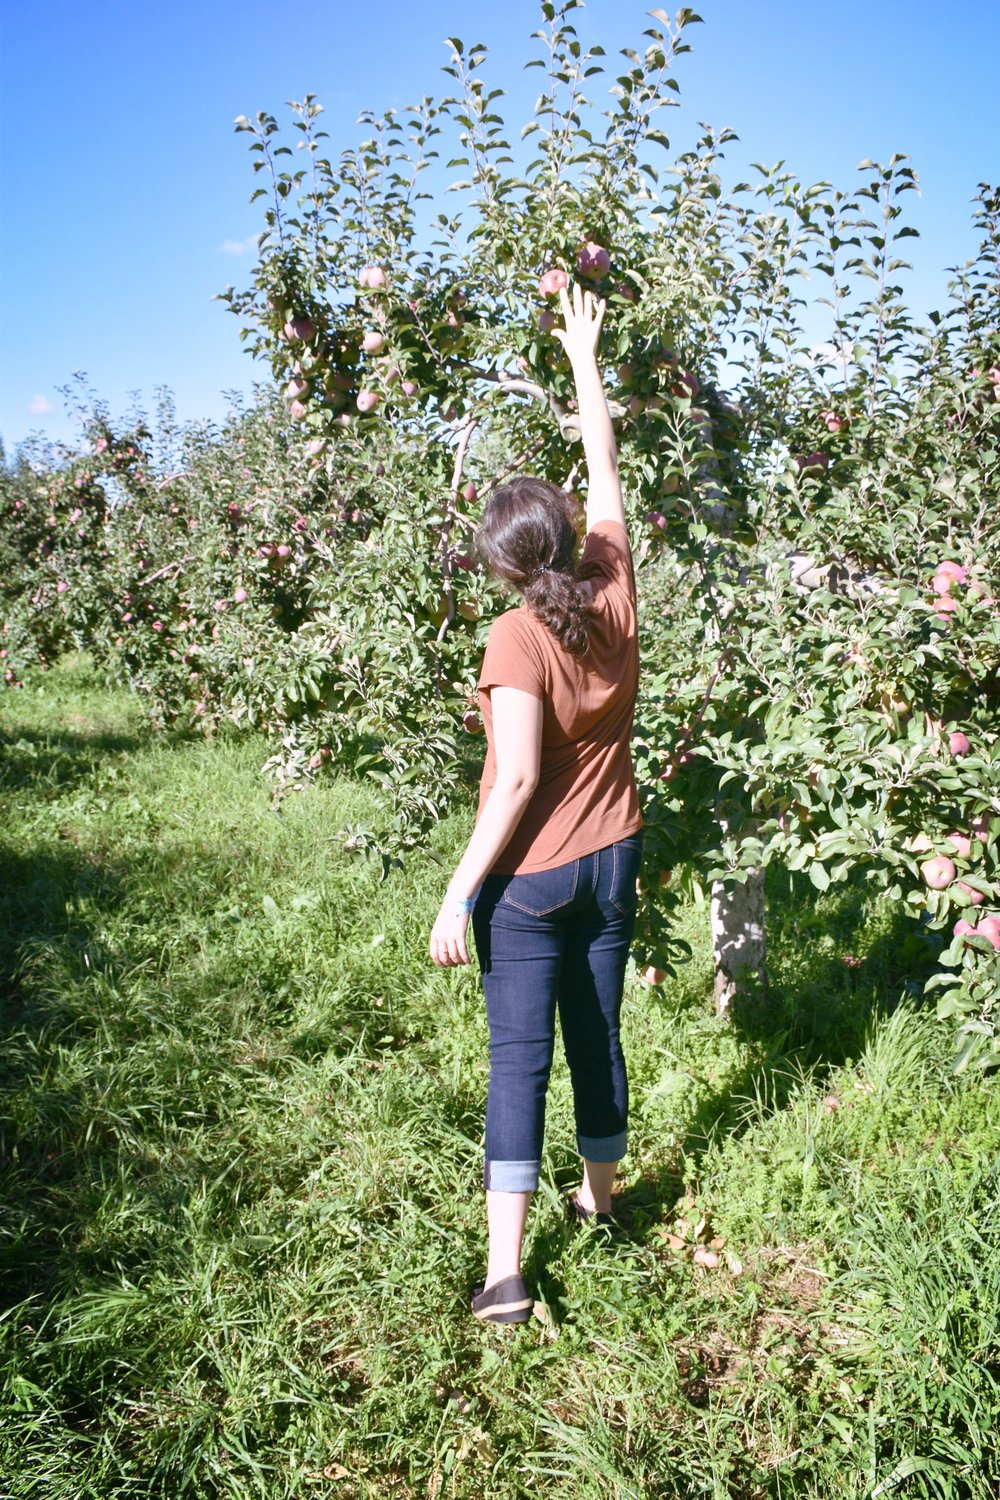 Apple picking in the Hudson River Valley.